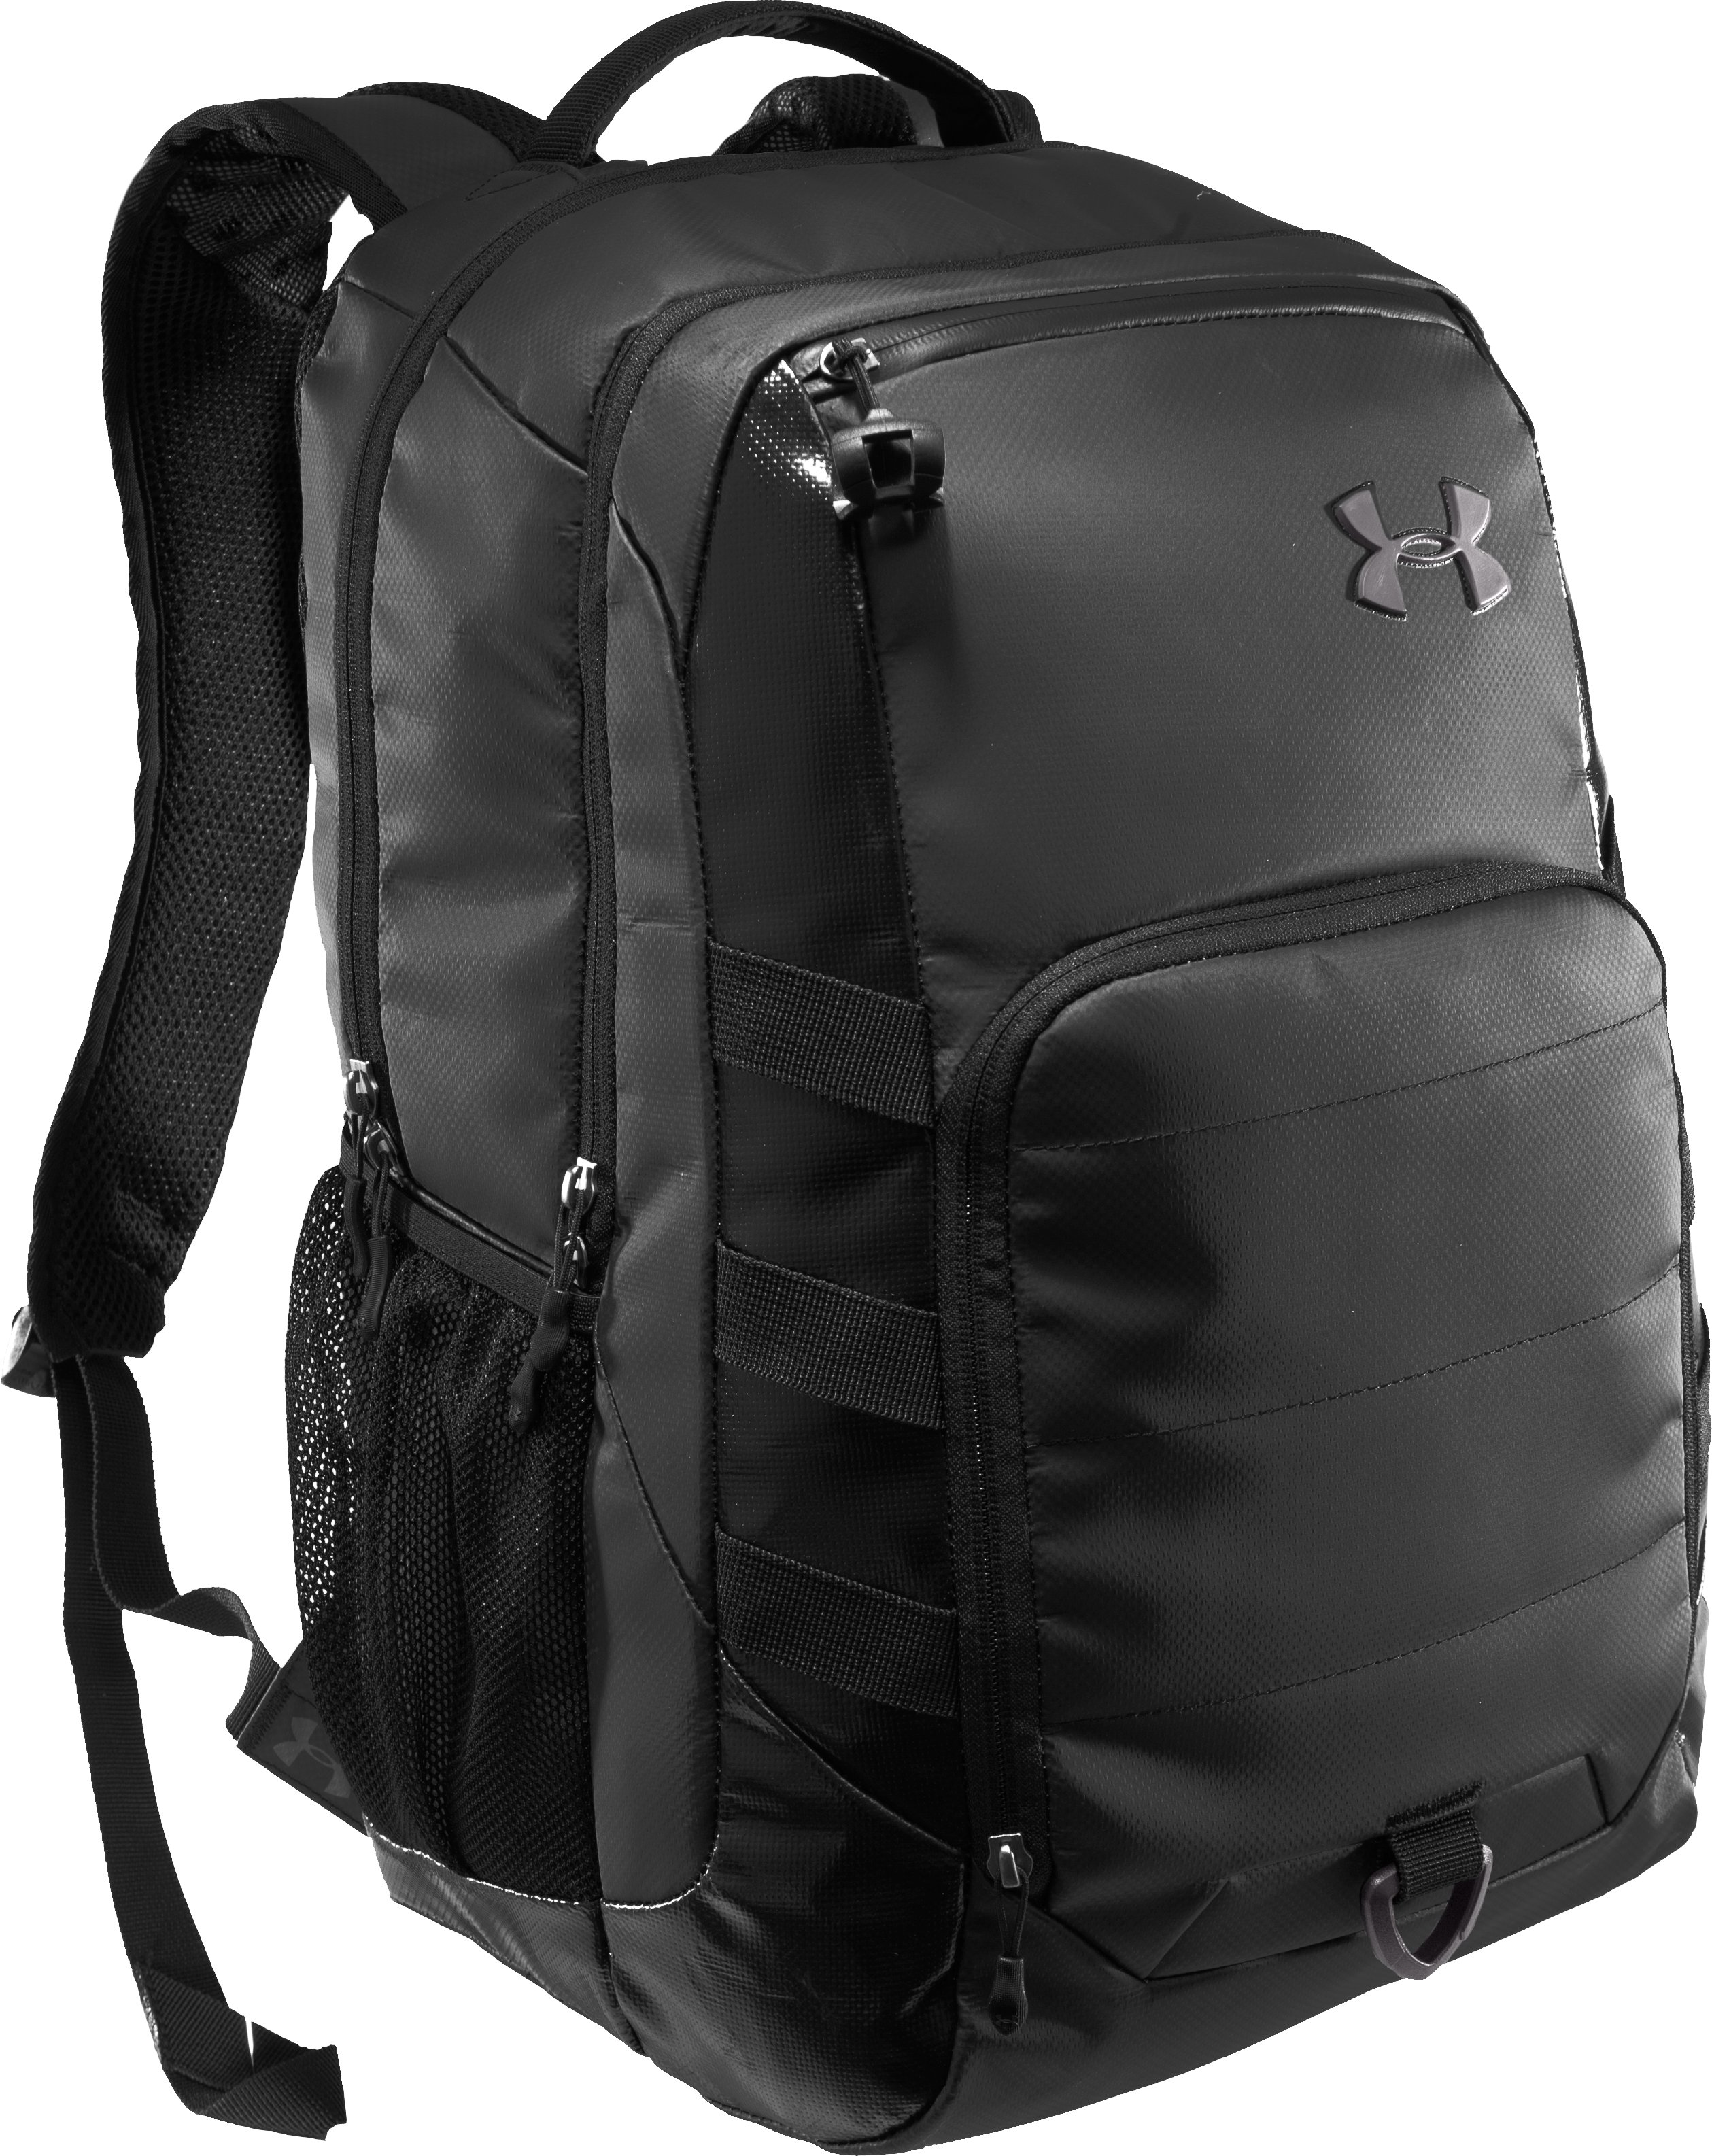 UA Renegade Storm Backpack, Black